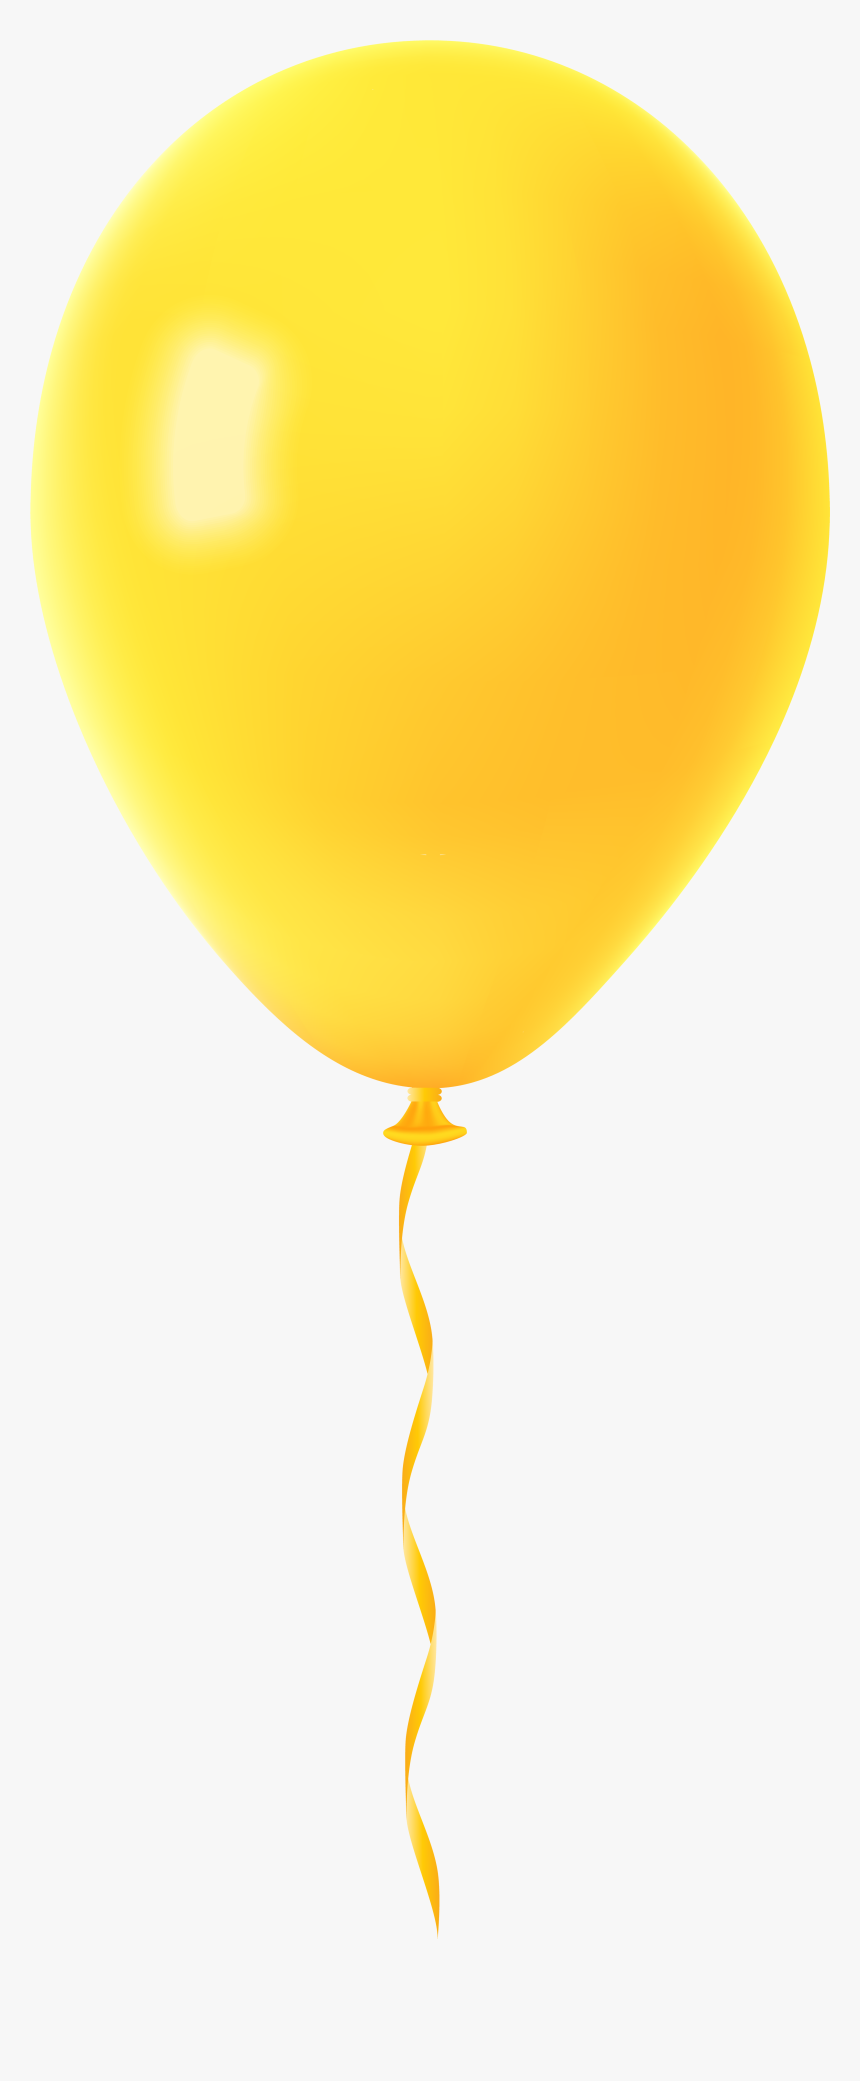 Clipart Black And White Balloon Transparent Png Clip.